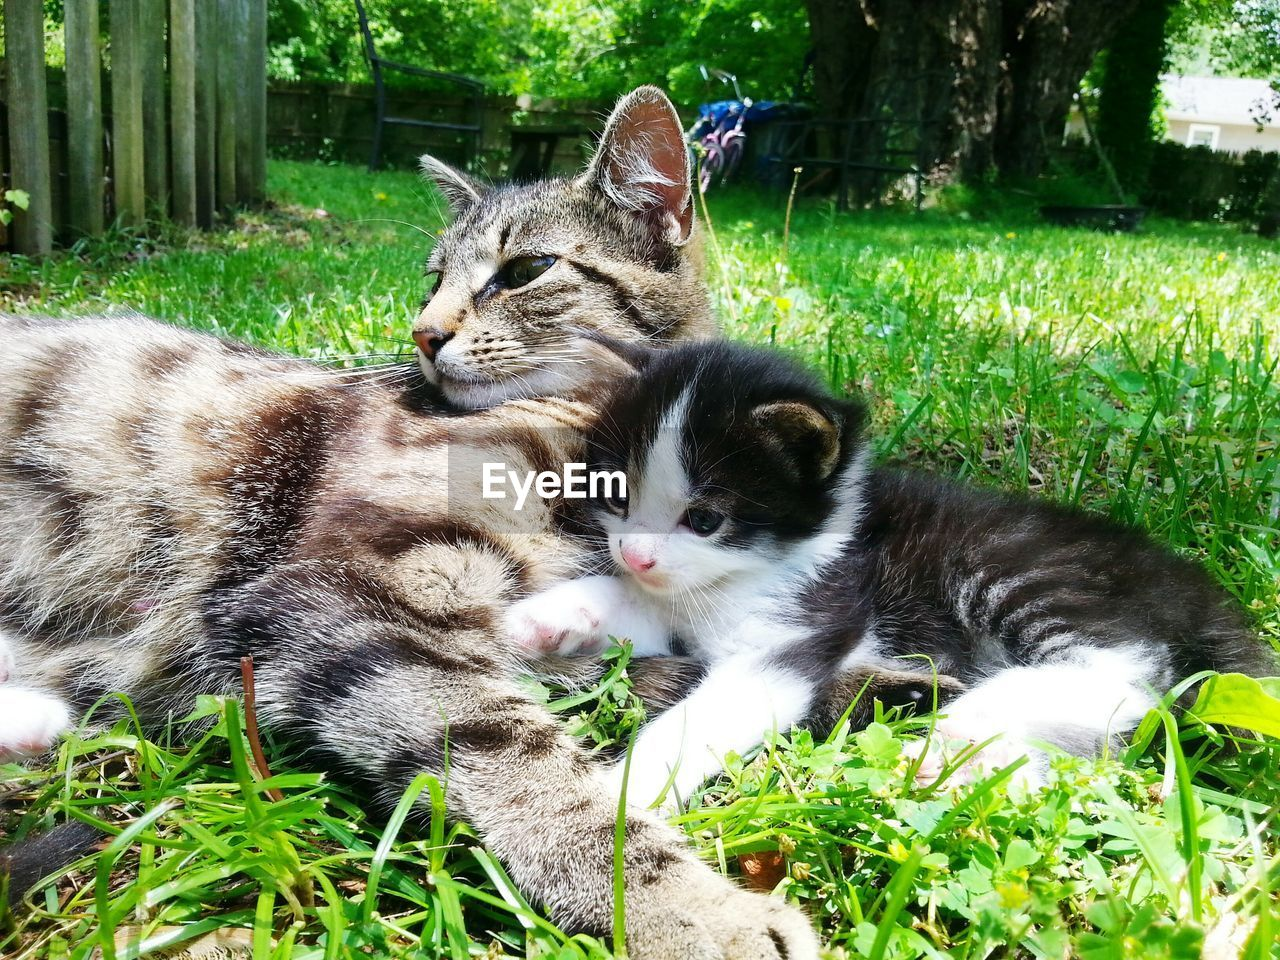 animal themes, domestic cat, domestic animals, mammal, grass, pets, feline, cat, green color, relaxation, day, no people, outdoors, plant, nature, young animal, lying down, growth, togetherness, close-up